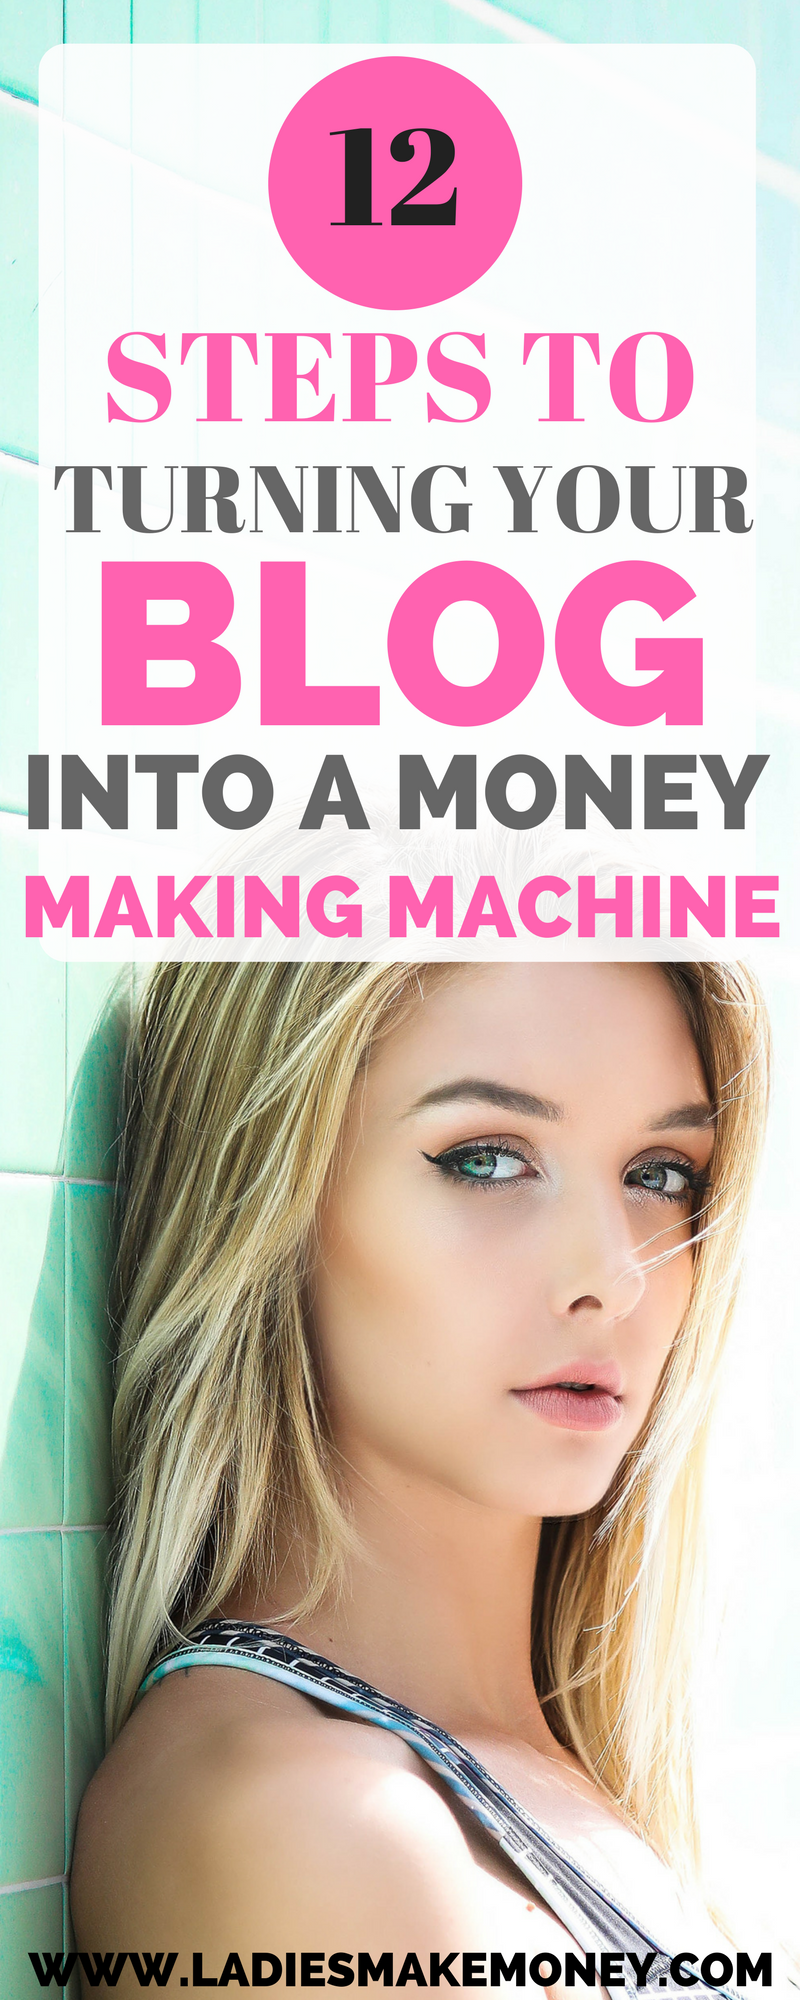 A Girl's guide to turning a Blog into a Money Making Machine